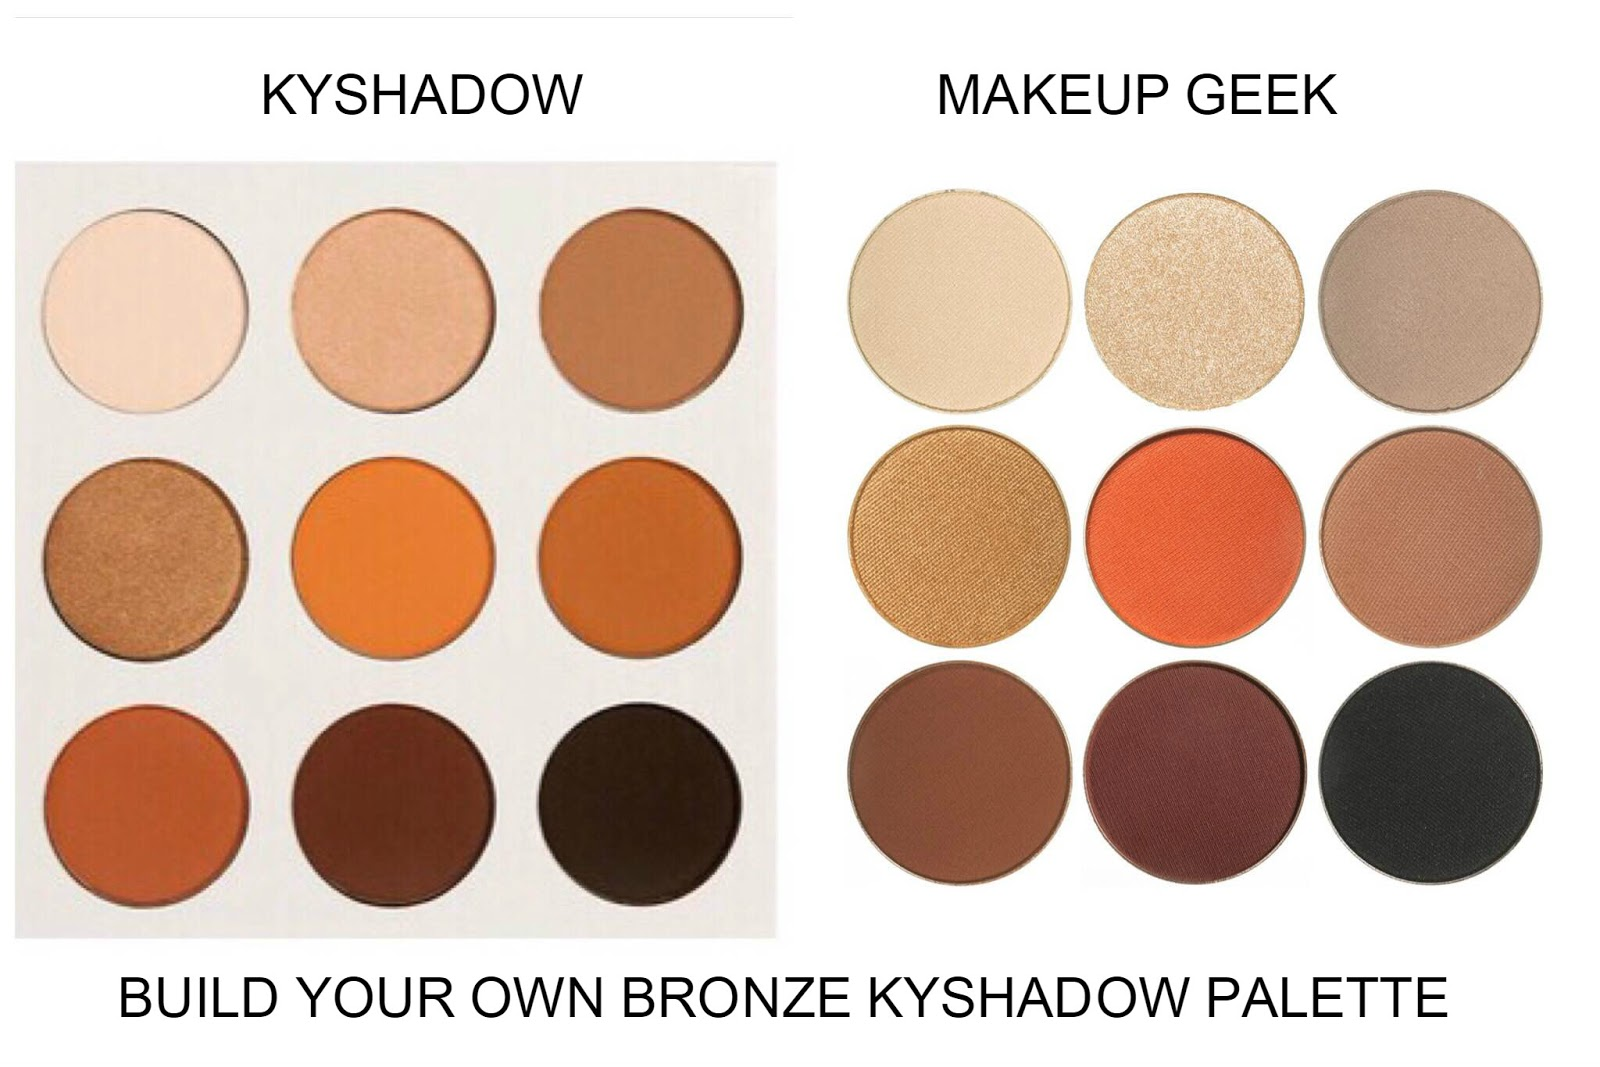 Build Your Own Palette 12 Shadows by Kylie Cosmetics #15